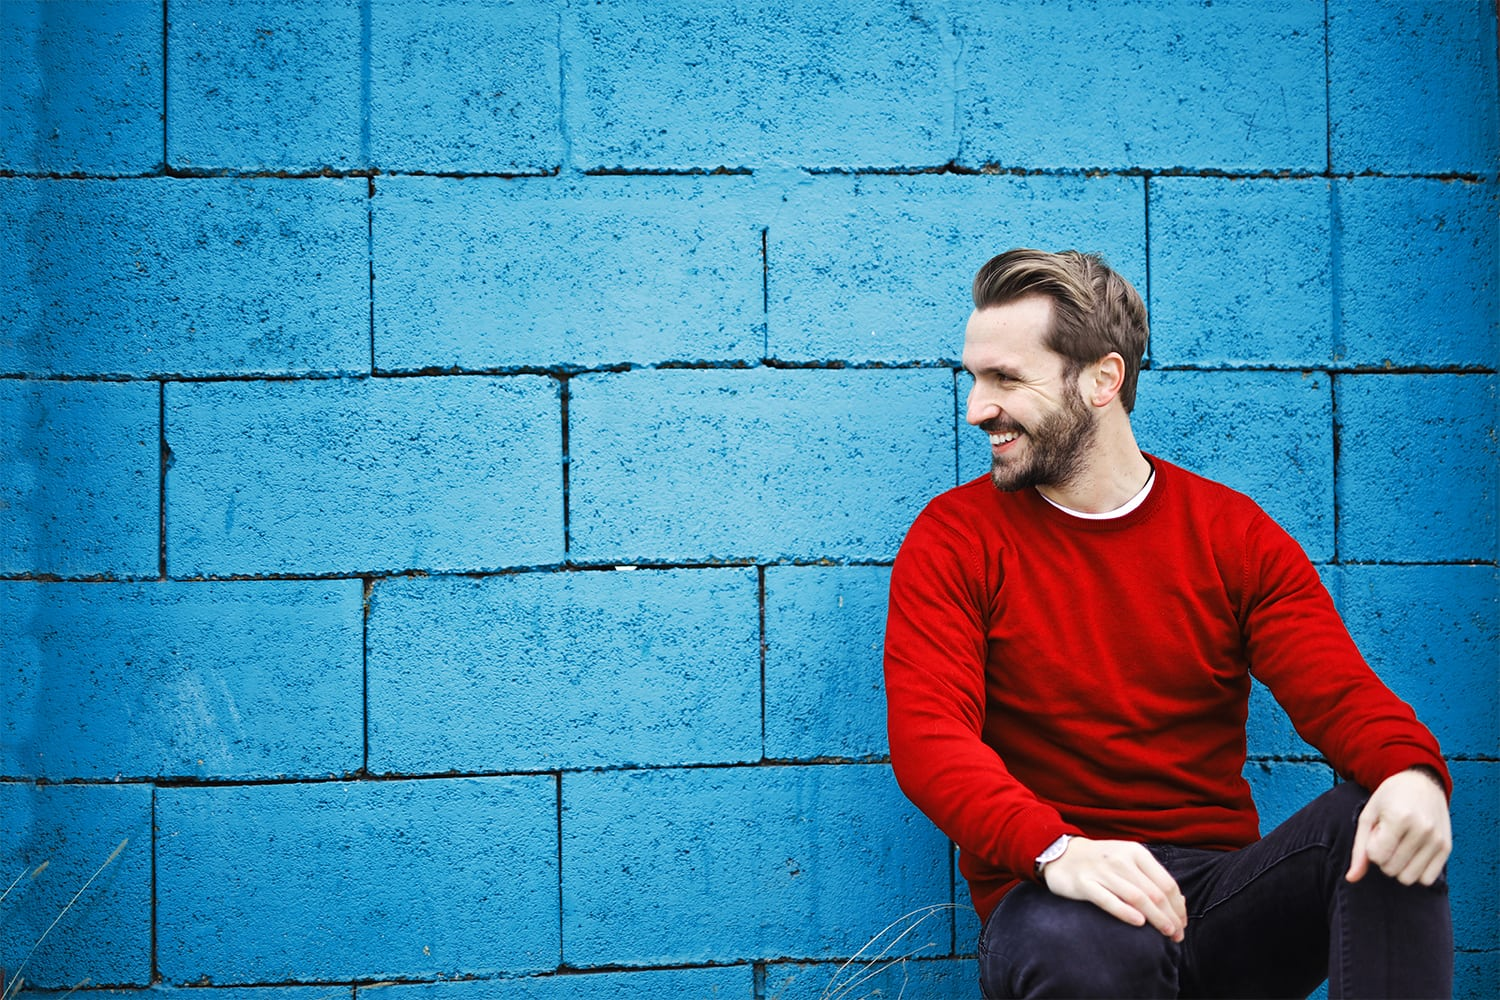 Man smiling sitting against blue wall